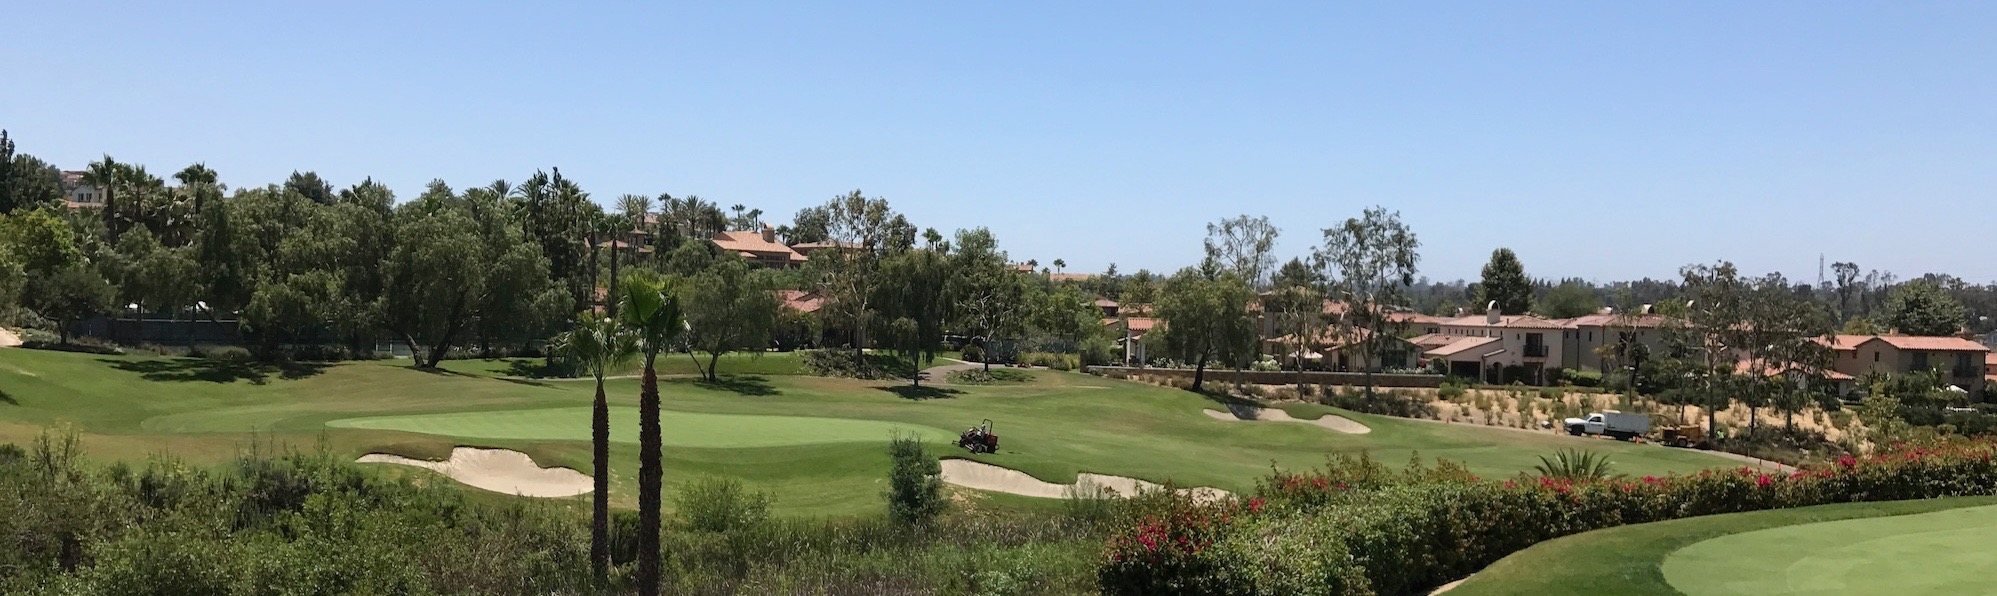 Golf Course at The Crosby in Rancho Santa Fe. by Don Clark Realtor 858 997-3859